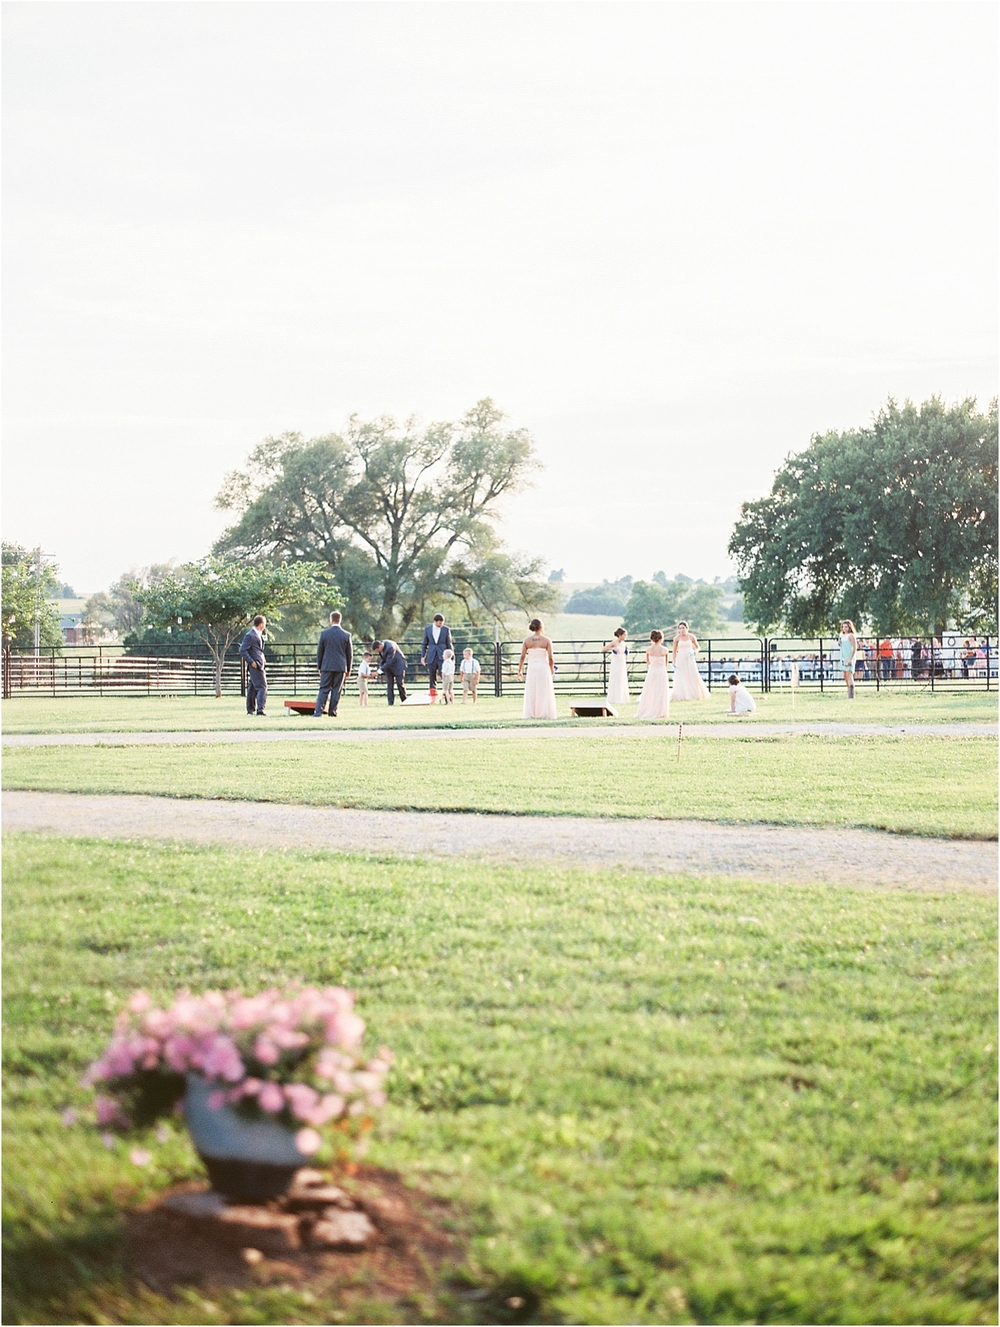 417 Wedding in Bolivar MO - Jordan Brittley Photography (jordanbrittley.com)